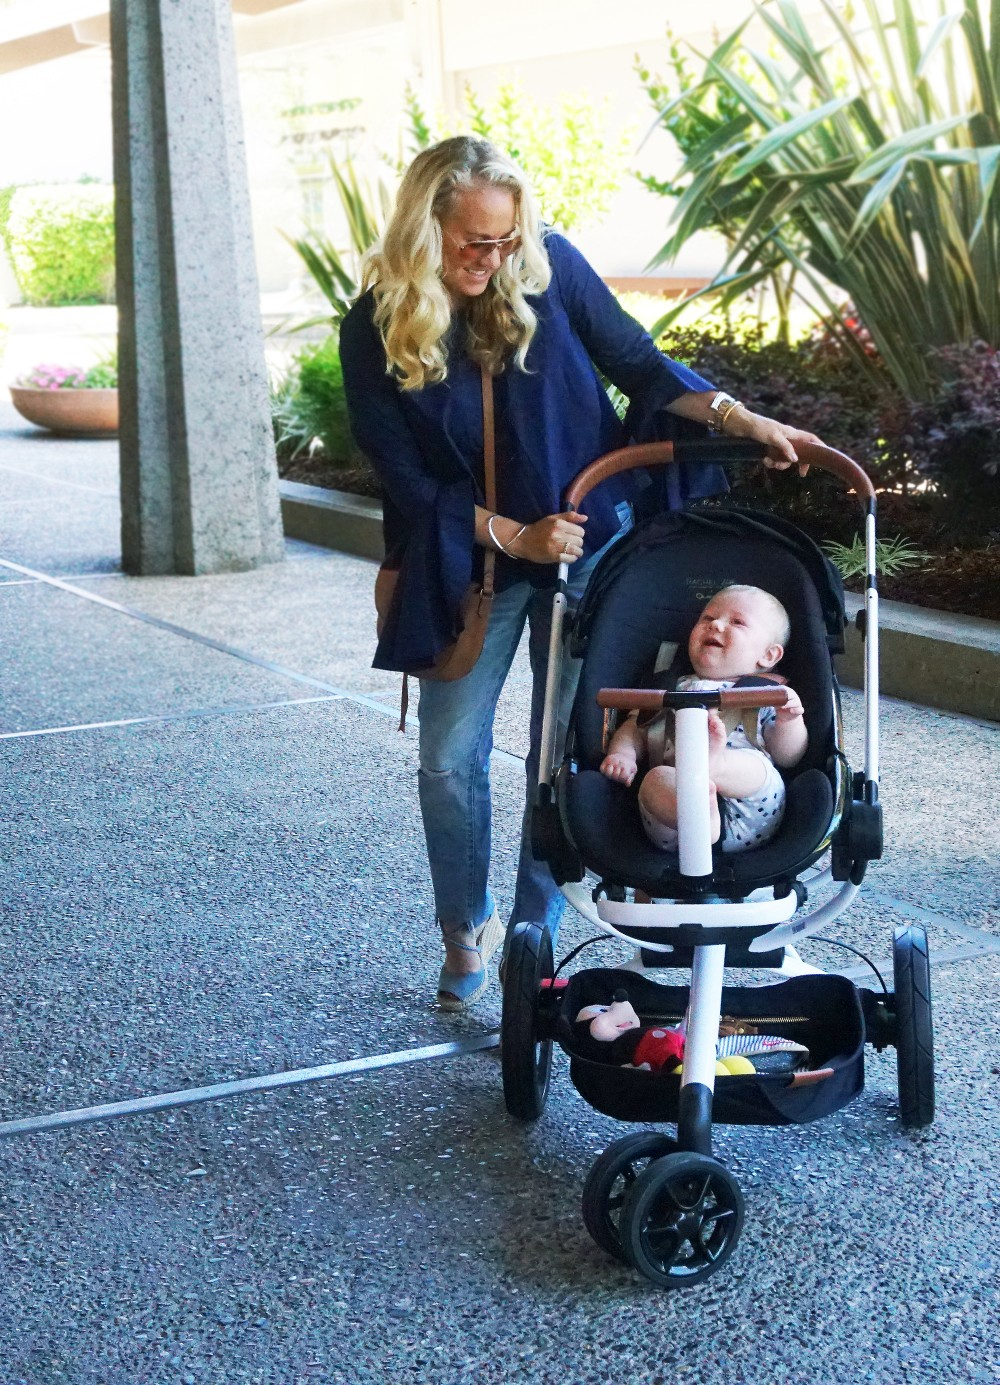 Review of Rachel Zoe x Quinny Moodd Stroller-Quinny Moodd Stroller-Modern Stroller-It Stroller for 2017-Chic Baby Stroller-Have Need Want-Baby Registry List Products-Baby Registry Must Have Item 5